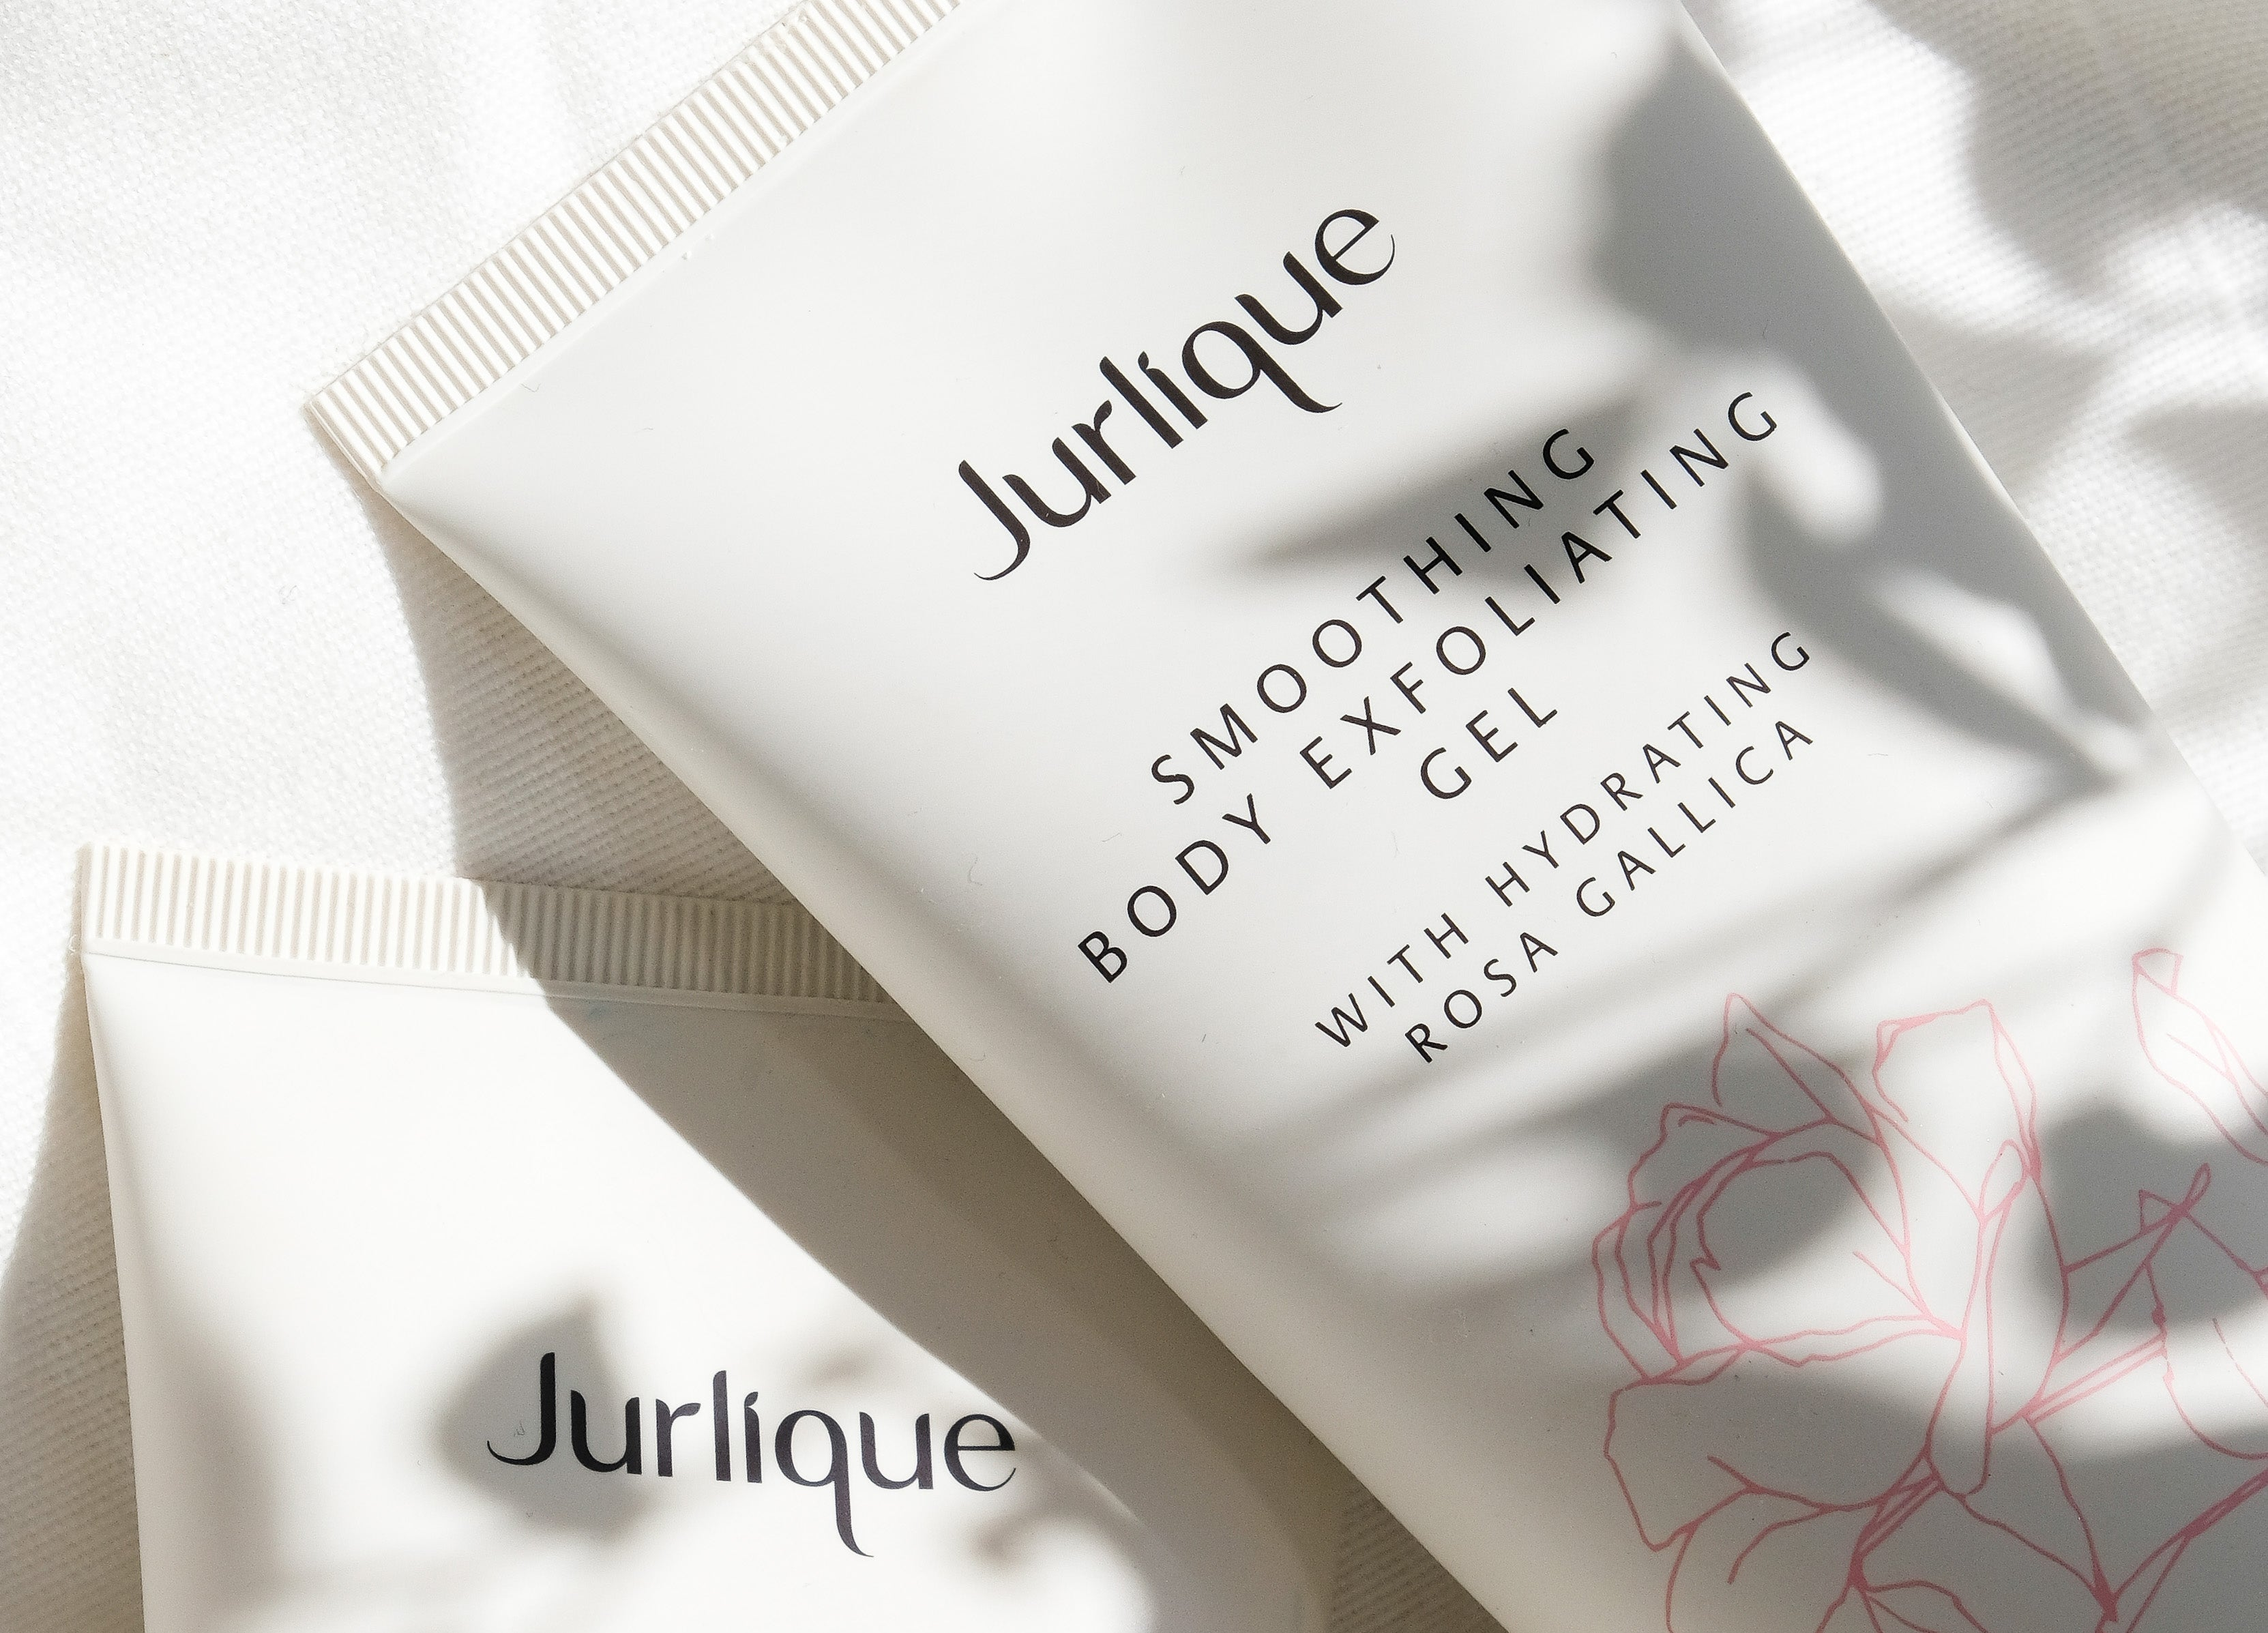 White bottles of Jurlique body care products with a shadow of flowers